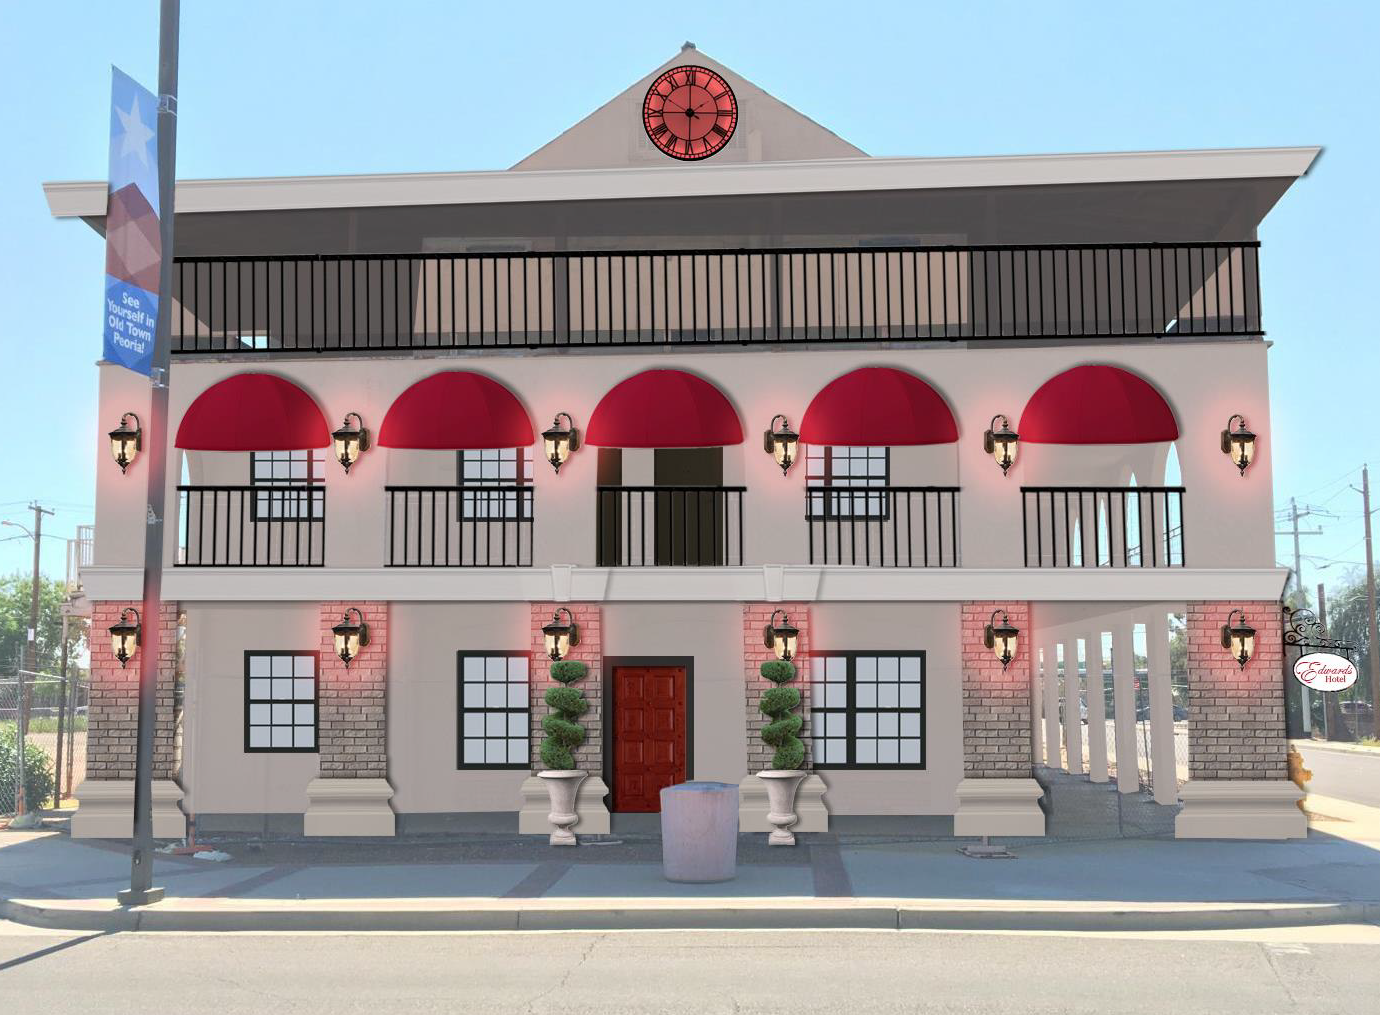 Peoria Planning and Zoning Commission documents show an approved design for the 101-year-old Edwards Hotel in Old Town.